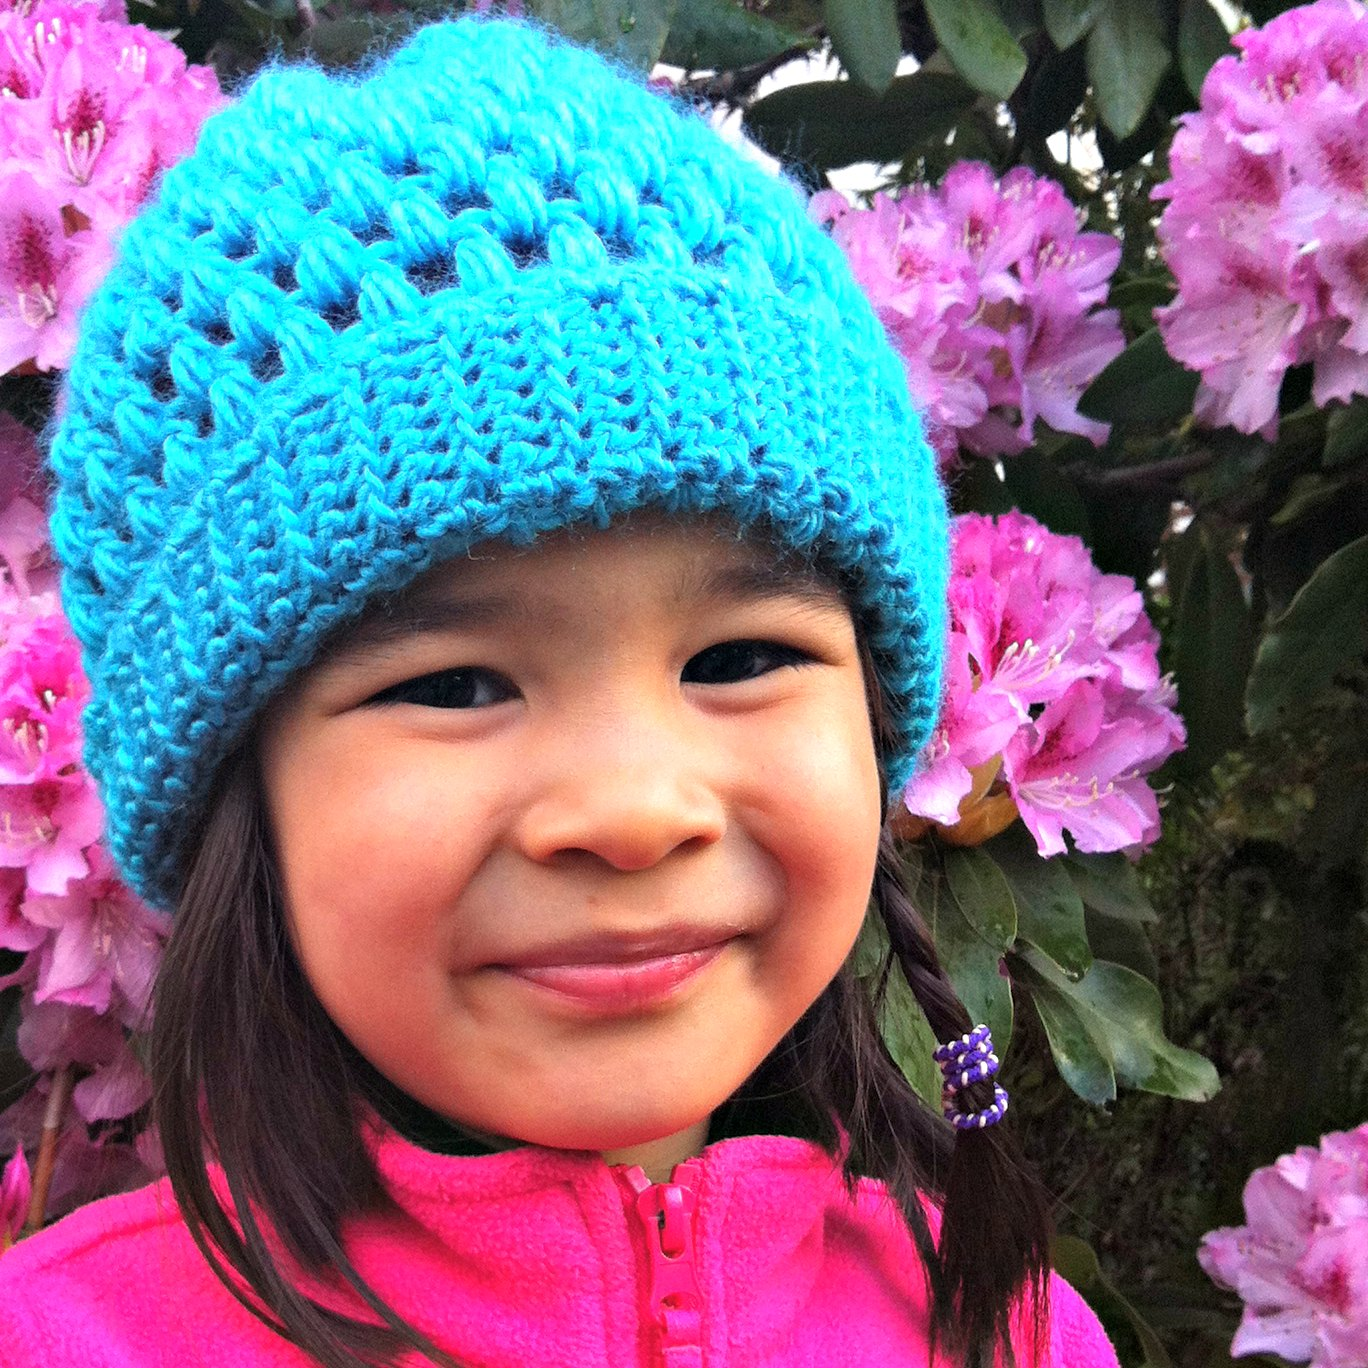 Elizabeth Crochet Hat Pattern For Child : Sew Creative Crocheted Kids Slouch Hat Pattern- Great for ...